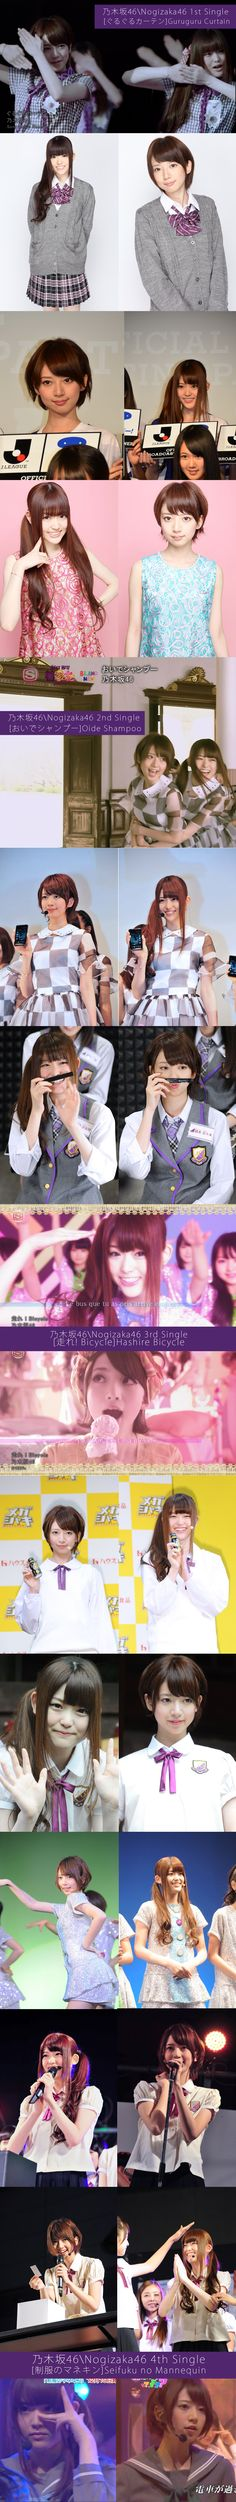 Special 1000th post *** \(^o^)/ *** Matsumura Sayuri (松村 沙友理) and Hashimoto Nanami (橋本 奈々未) cap for each 乃木坂46 (nogizaka46)  single from first single 『ぐるぐるカーテン』Guruguru Curtain ~ to second single 『おいでシャンプー』Oide Shampoo ~ to third single 『走れ! Bicycle』Hashire Bicycle ~ and to their newest single [制服のマネキン]Seifuku no Mannequin ~ the best moment is indeed in oide shampoo when there so much sayurinanamin moment ~ they hug each other ~ and sweet eyes contact to each other ♥ ♥ ♥ ♥ ♥ ♥ (>o<) ♥ ♥ ♥ ♥ ♥ ♥